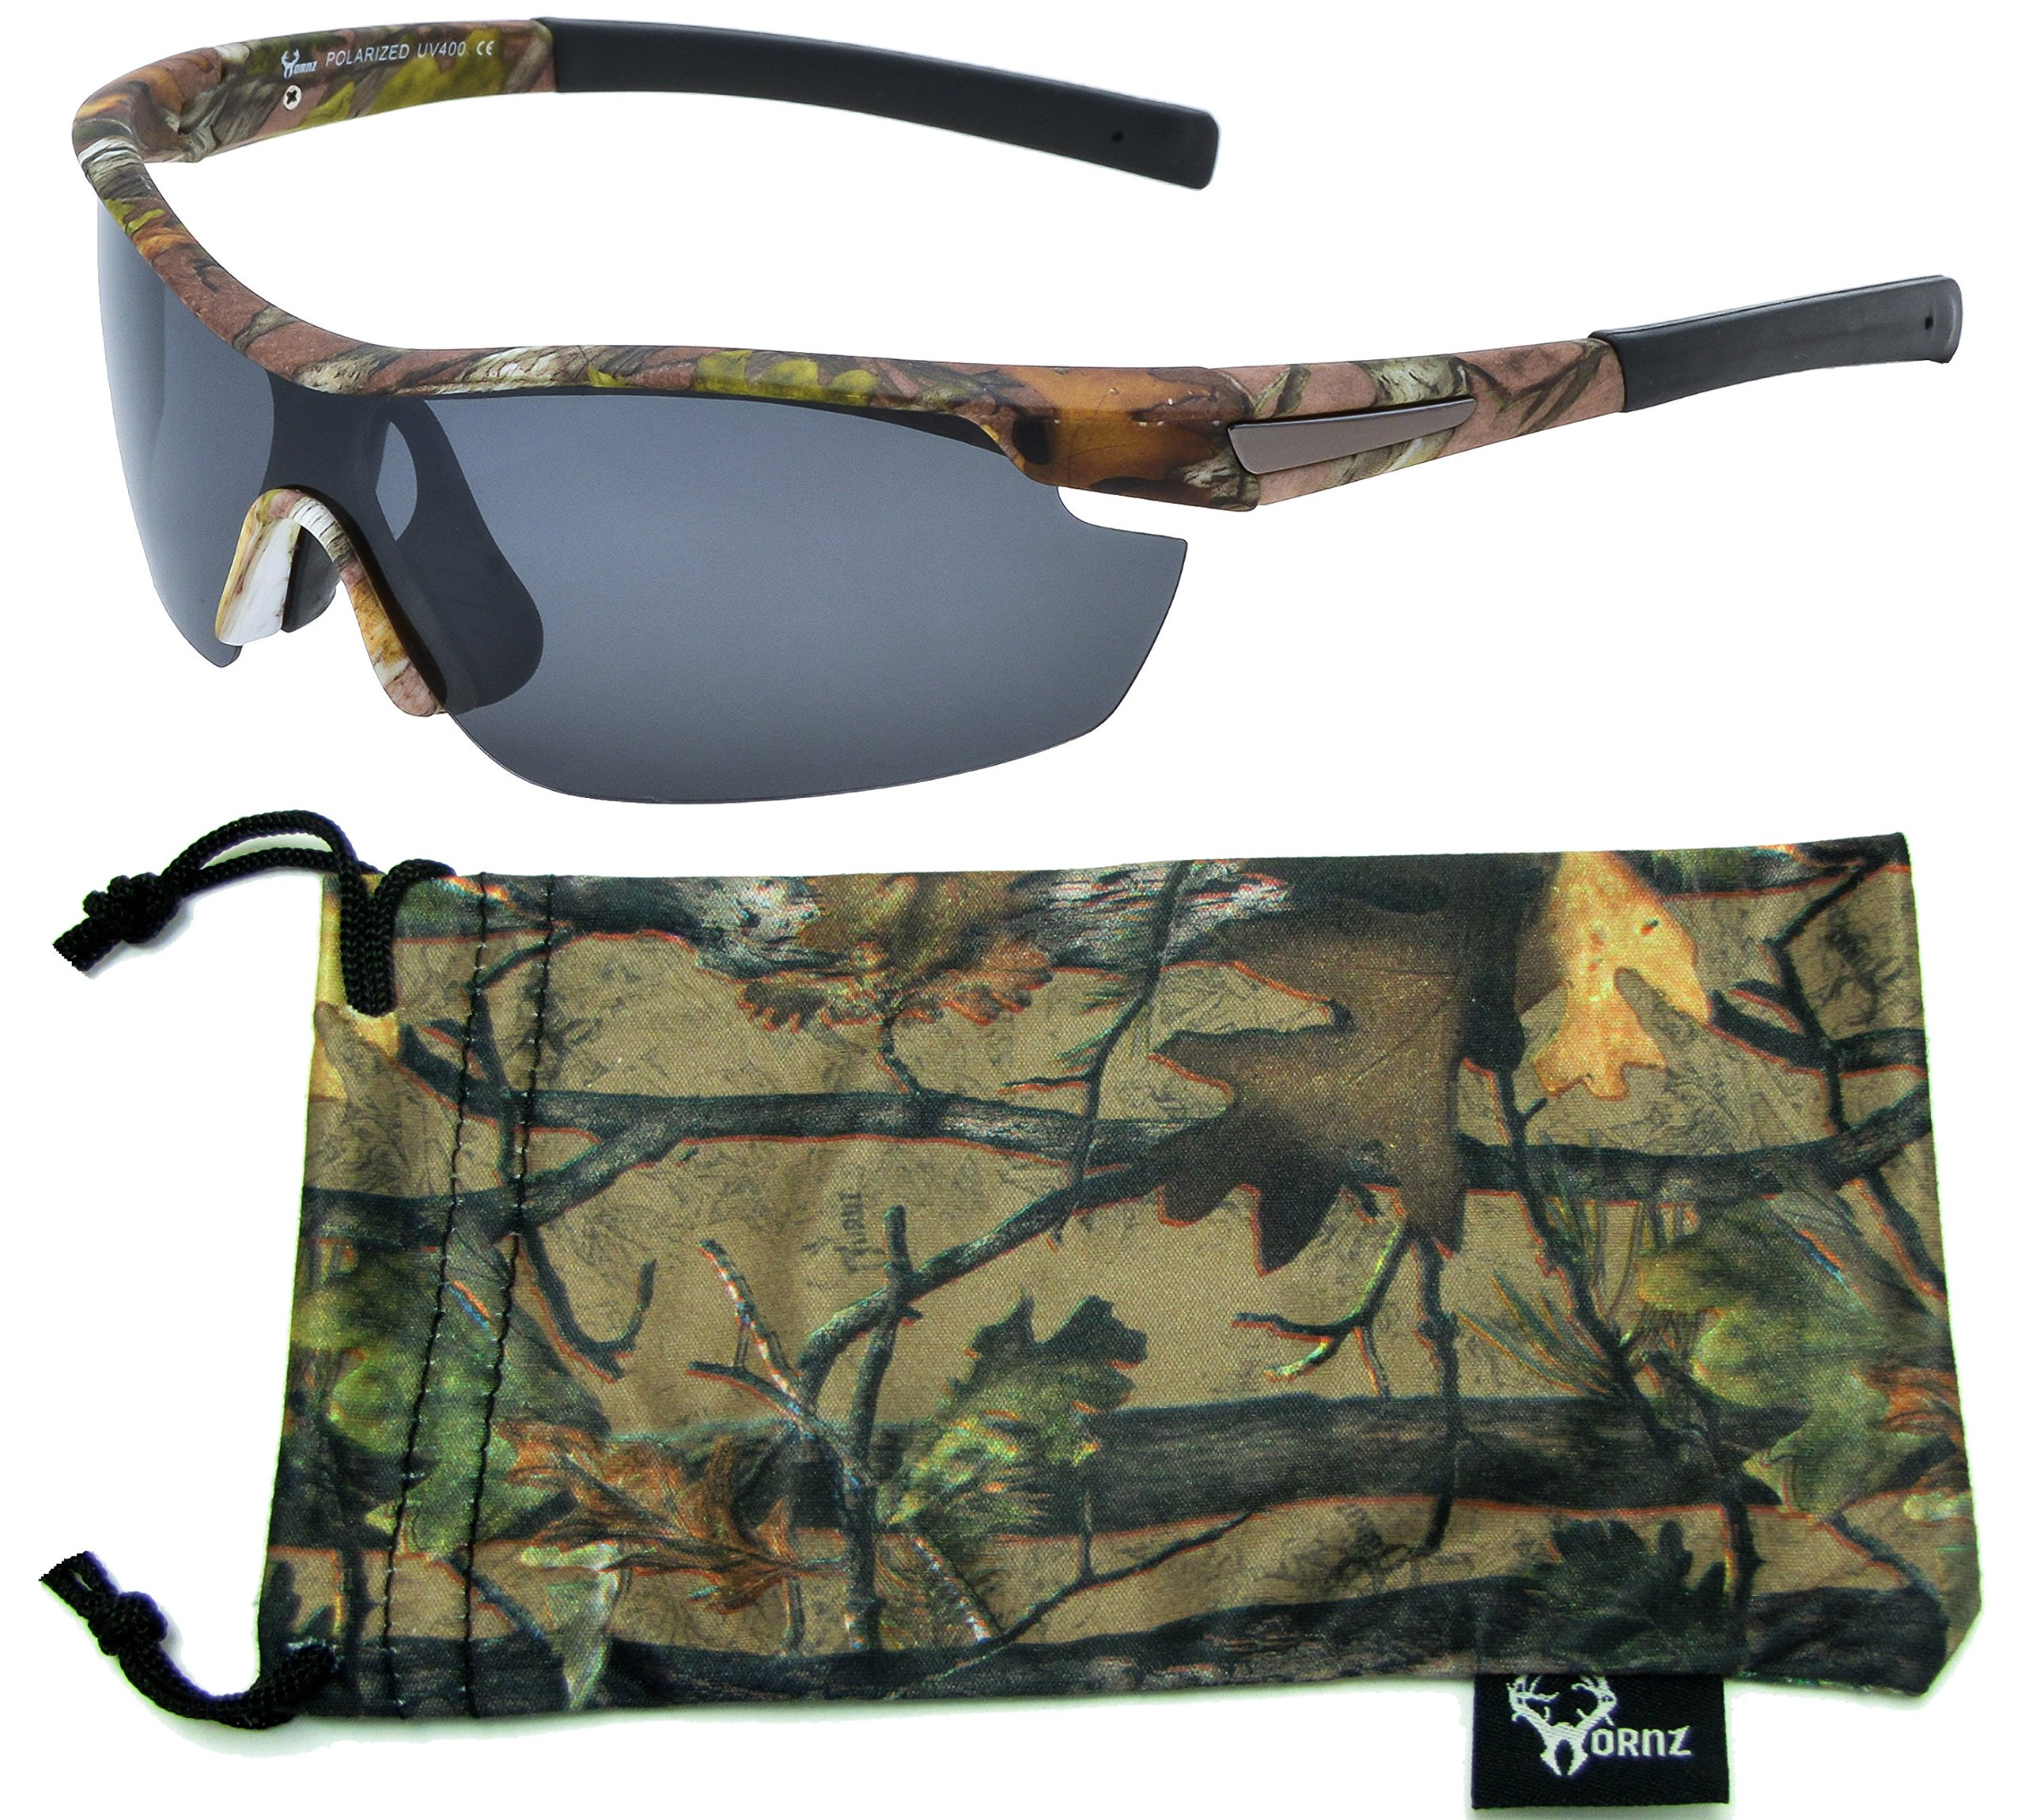 Hornz Brown Forrest Camouflage Polarized Sunglasses for Men Wrap Around Sport Frame & Free Matching Microfiber Pouch - Brown Camo Frame - Smoke Lens